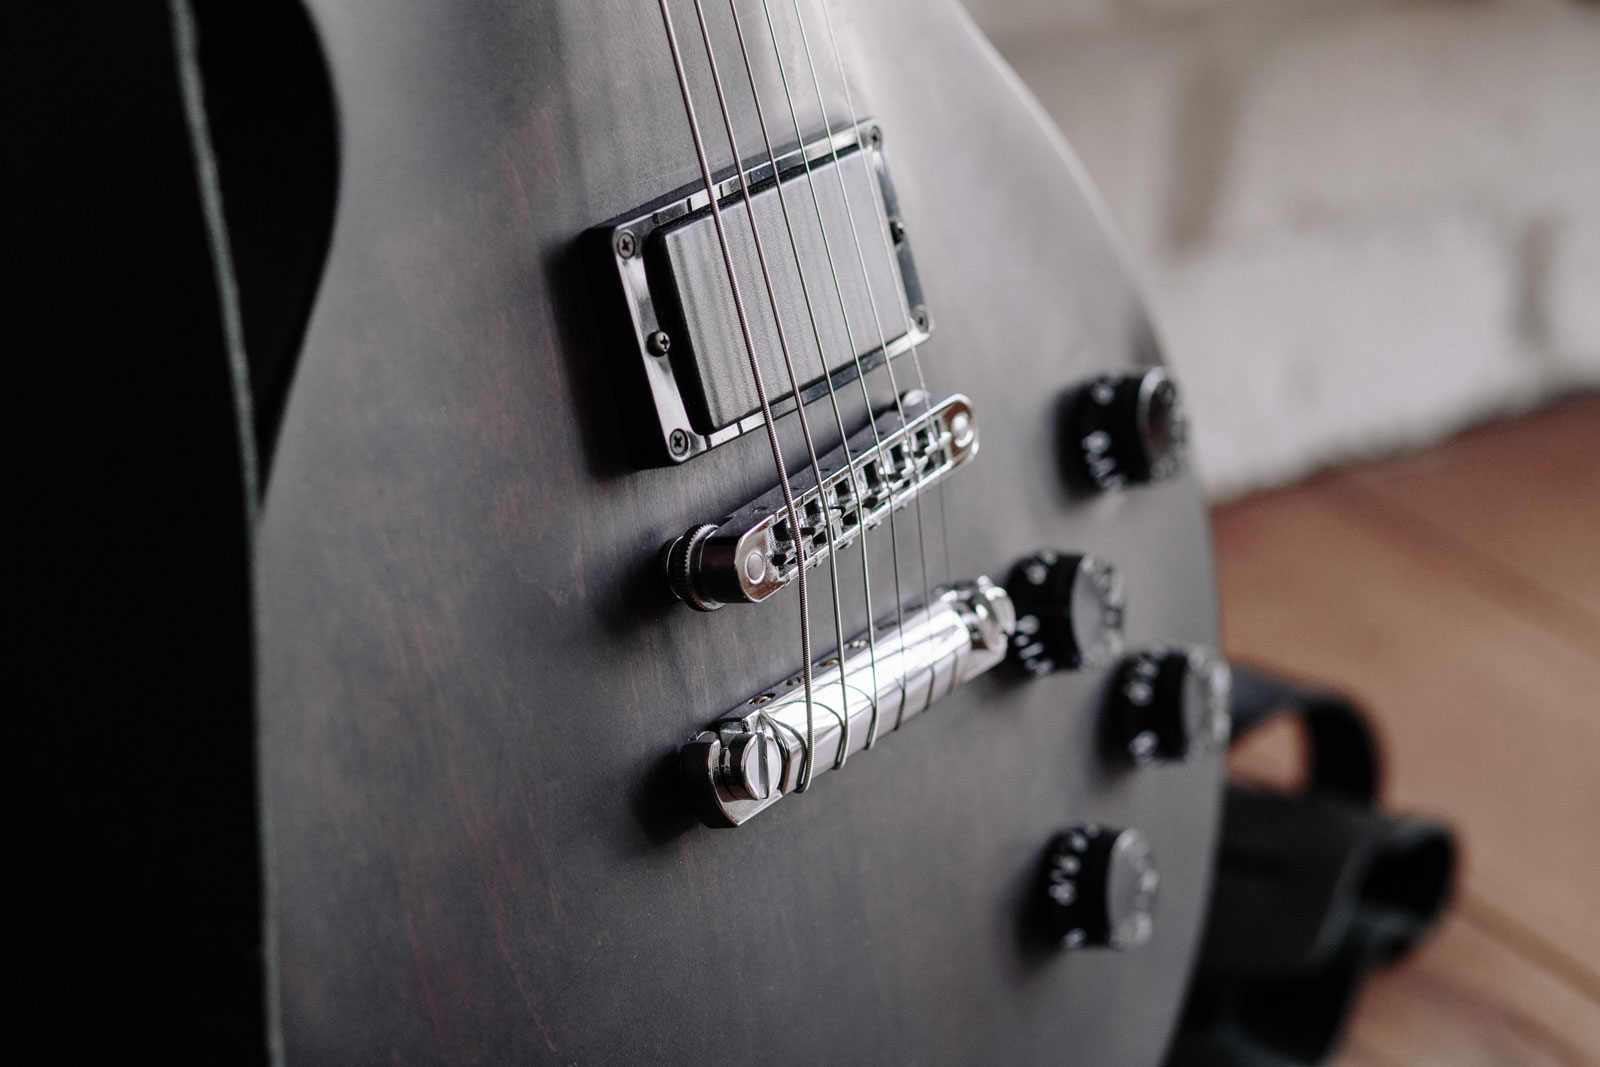 Guitar | Buy These Top 10 Guitar Accessories To Play Like A Boss